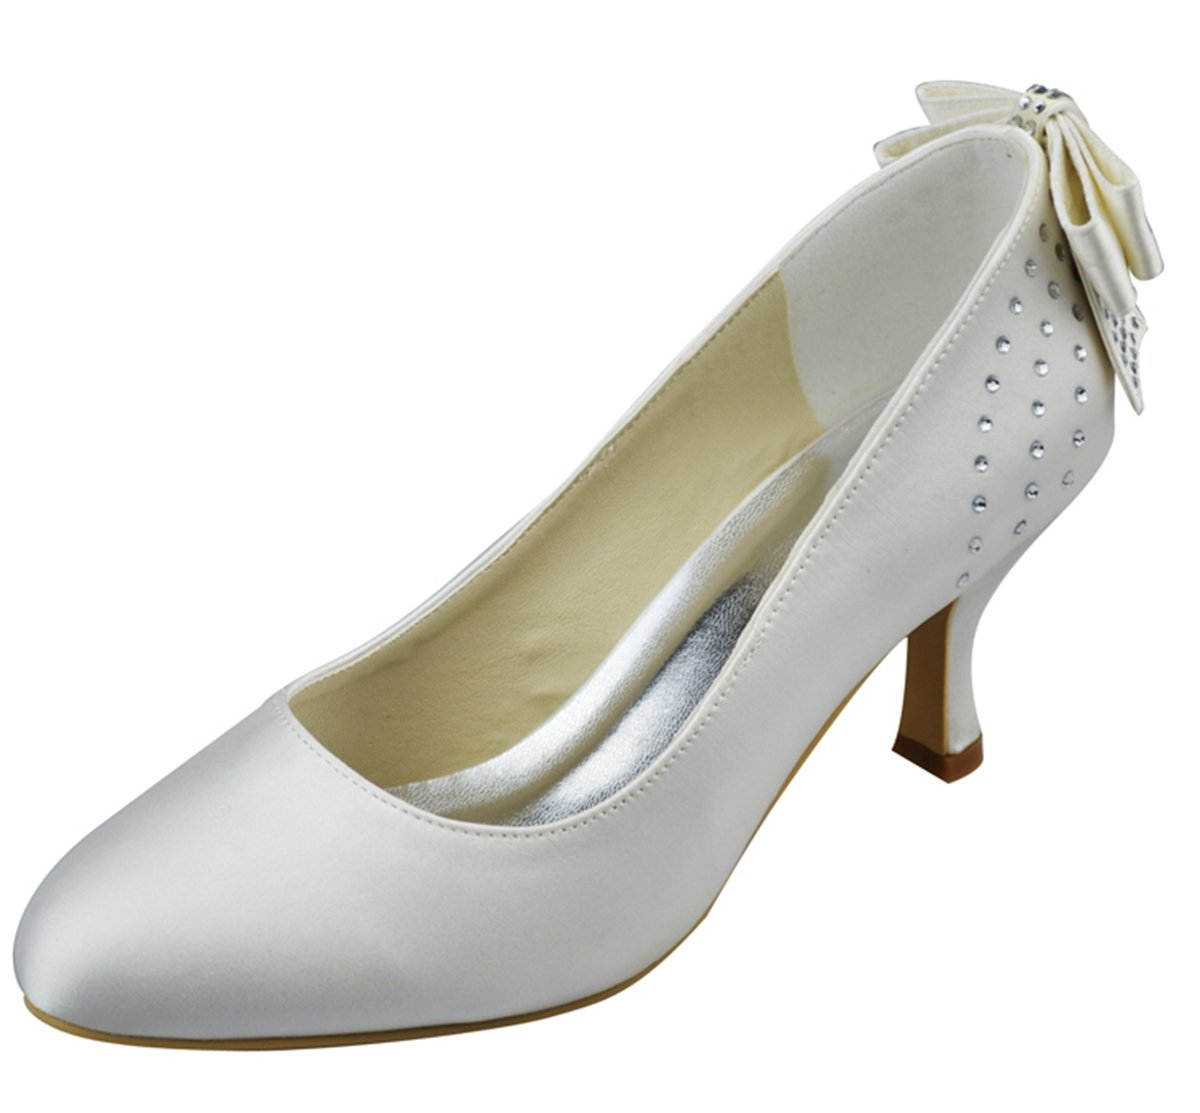 Minitoo , Bout fermé femme Minitoo Bout Beige - femme ivoire d331dda - gis9ma7le.space